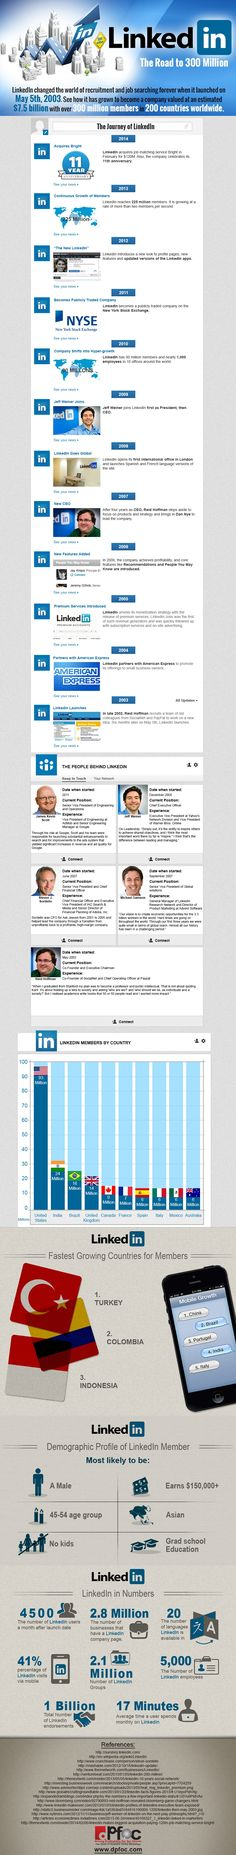 "The history of #LinkedIn is outlined in this #infographic to celebrate their 11th anniversary. In May 2014 LinkedIn surpassed 300 million members. ""LinkedIn The Road to 300 Million"" was created by http://www.dpfoc.com/uk/"